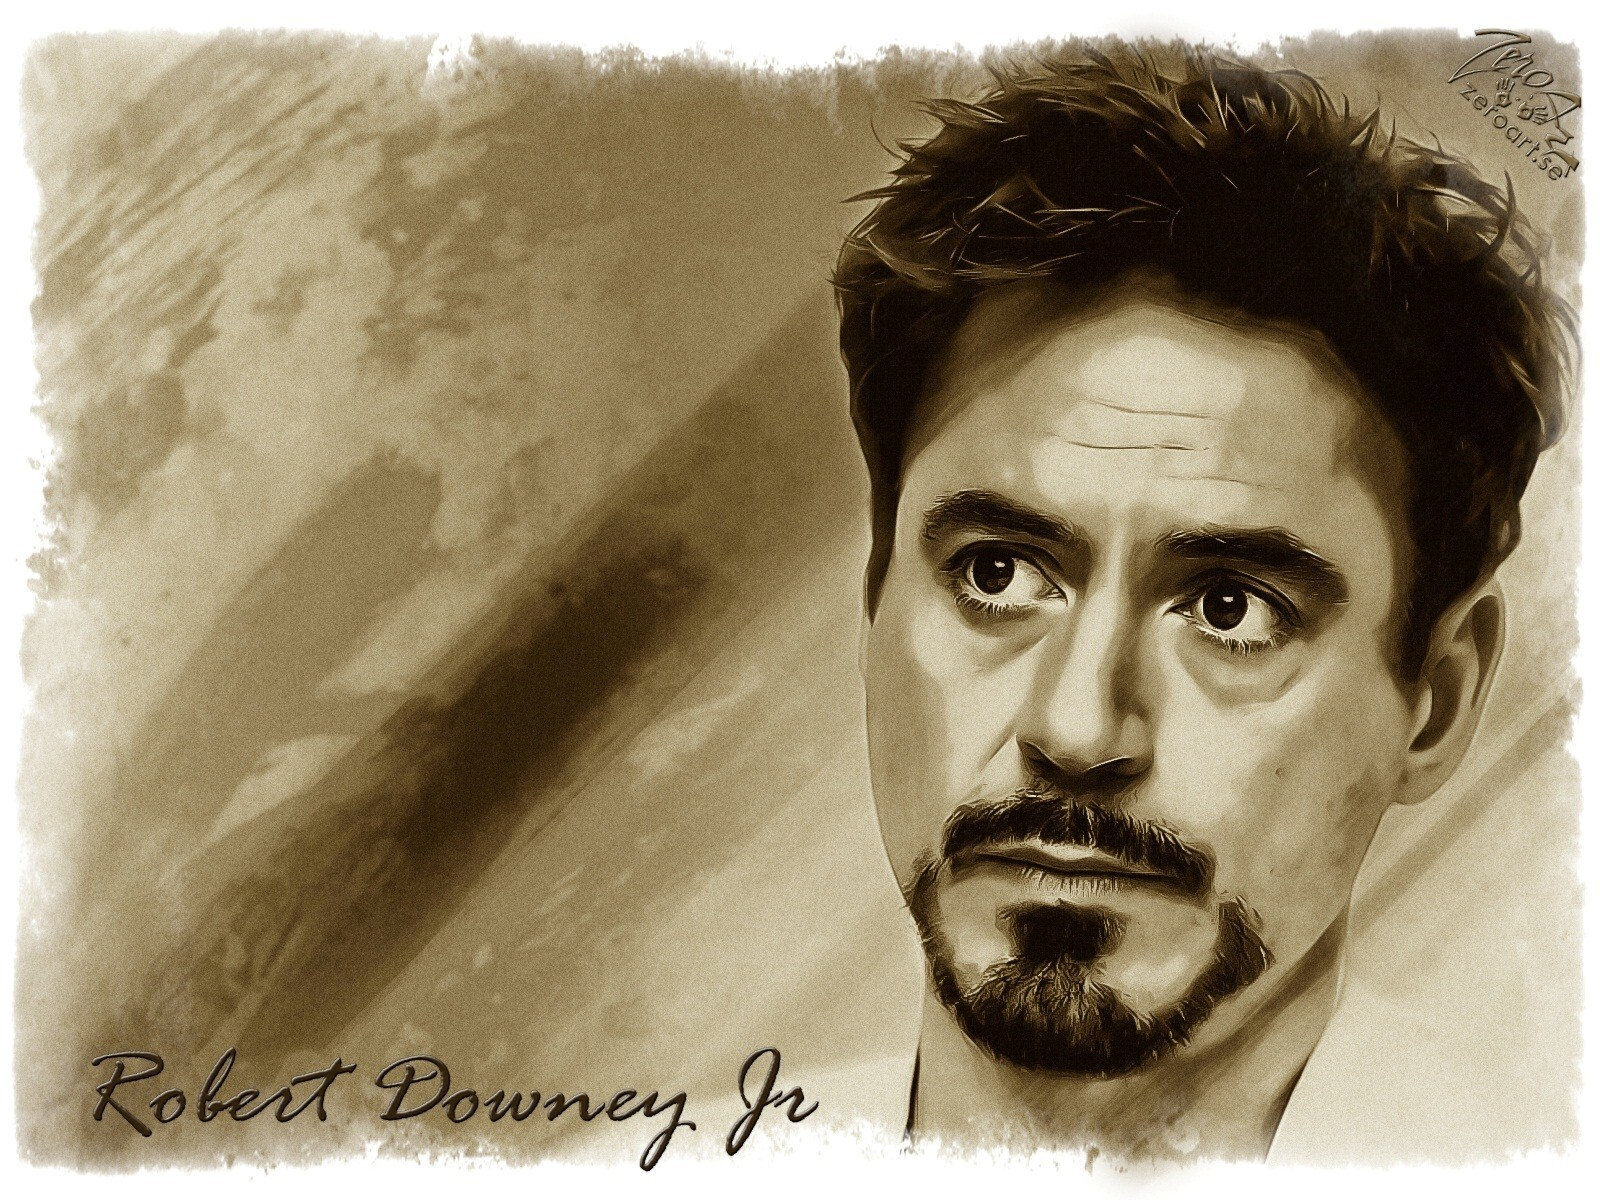 Free hd wallpaper robert downey jr - Robert Downey Wallpapers